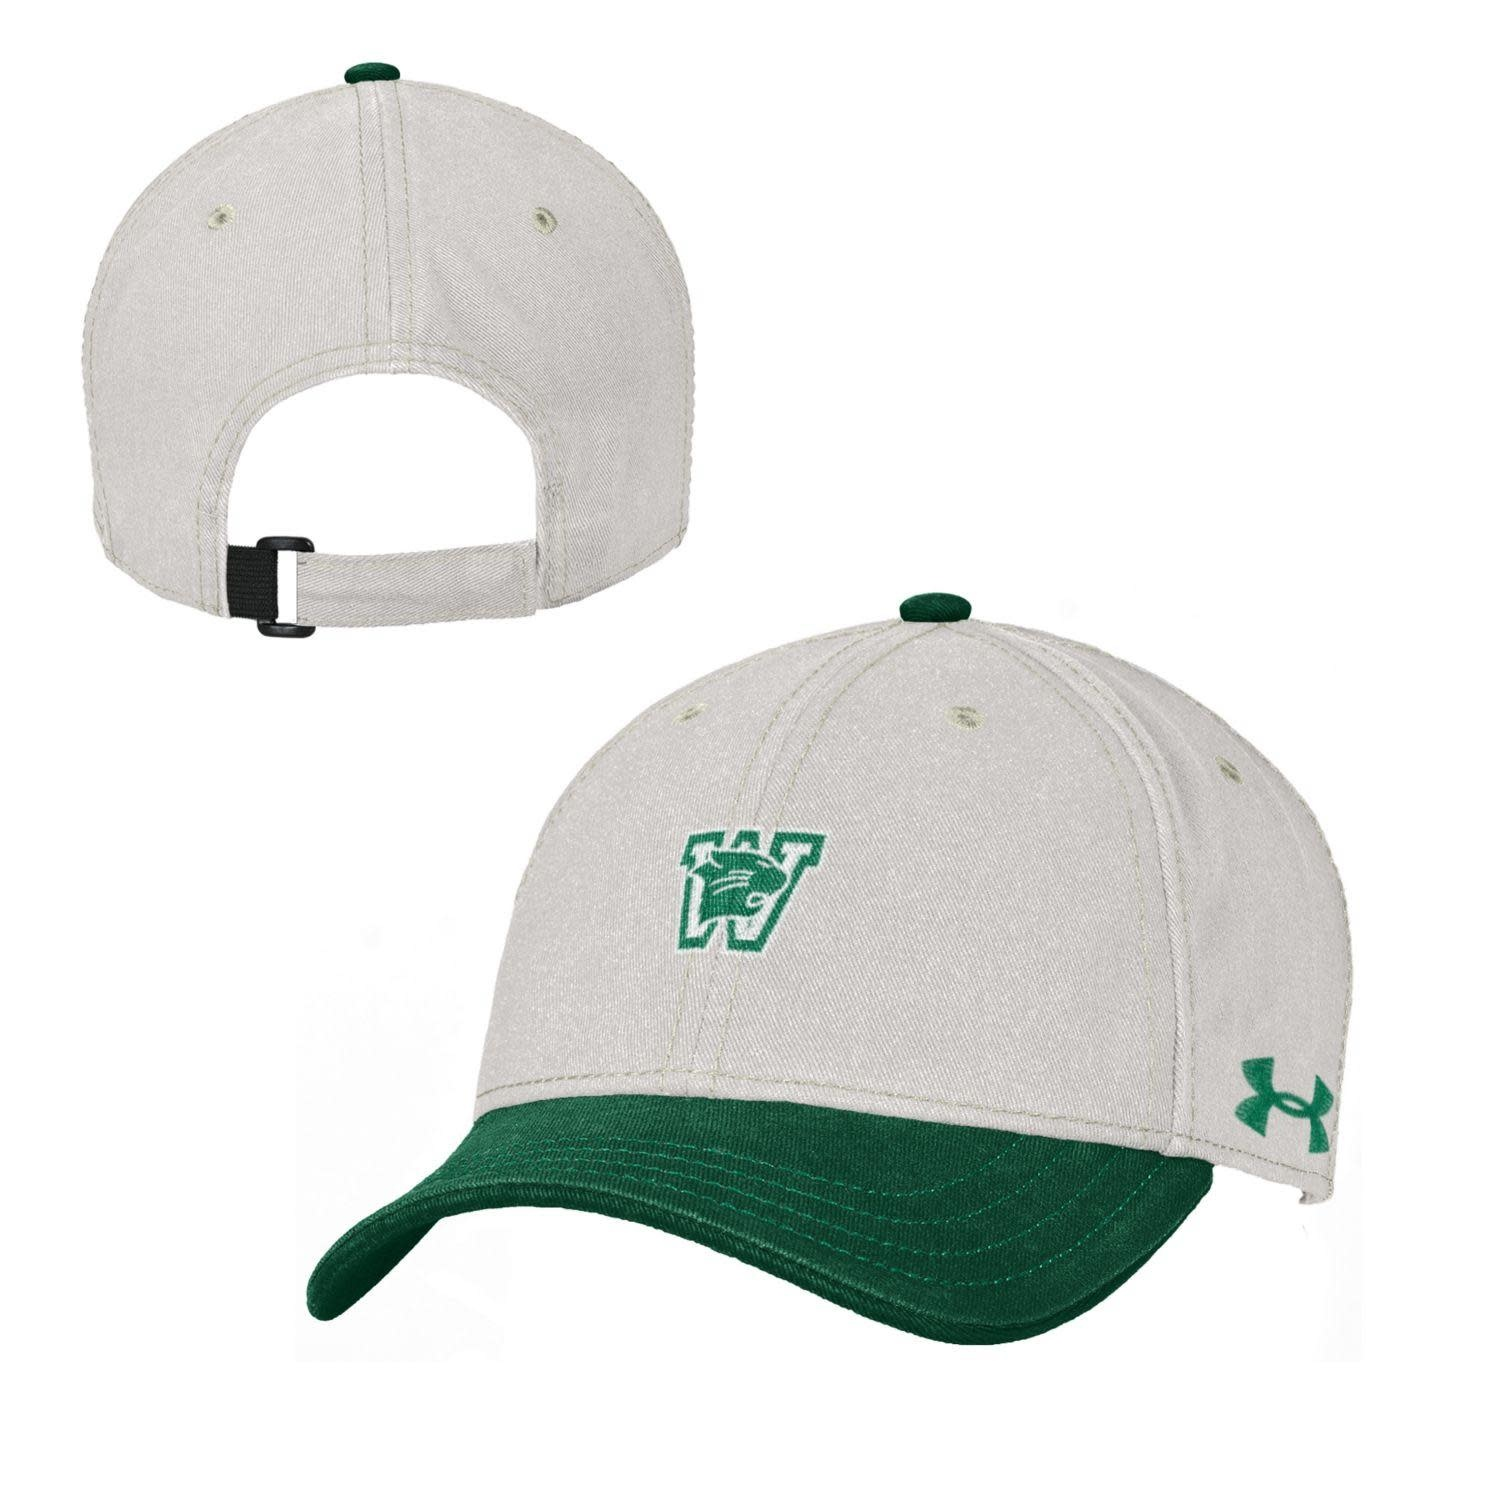 Under Armour Hat: UA Youth OS Free Fit Stone with Green Visor and Green Button